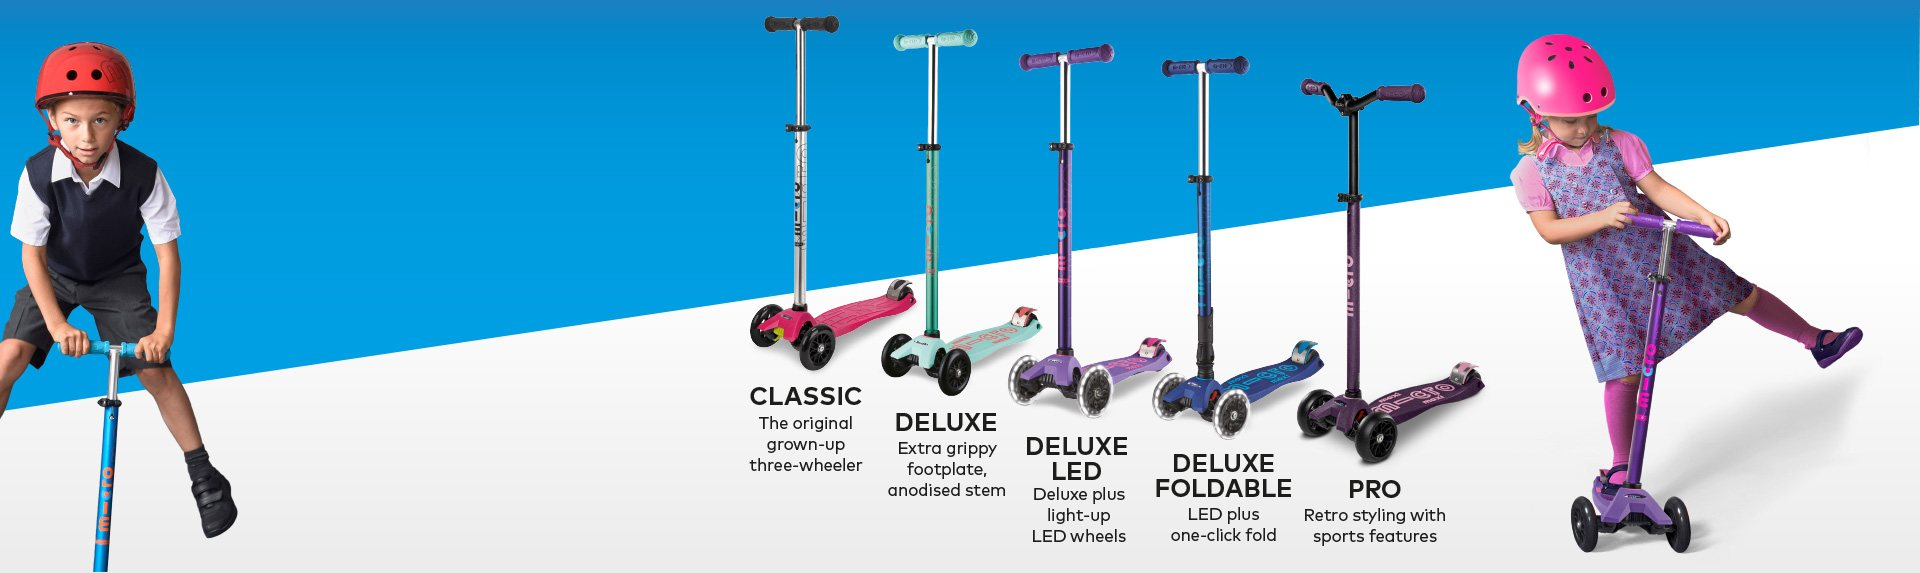 New Colors Available!